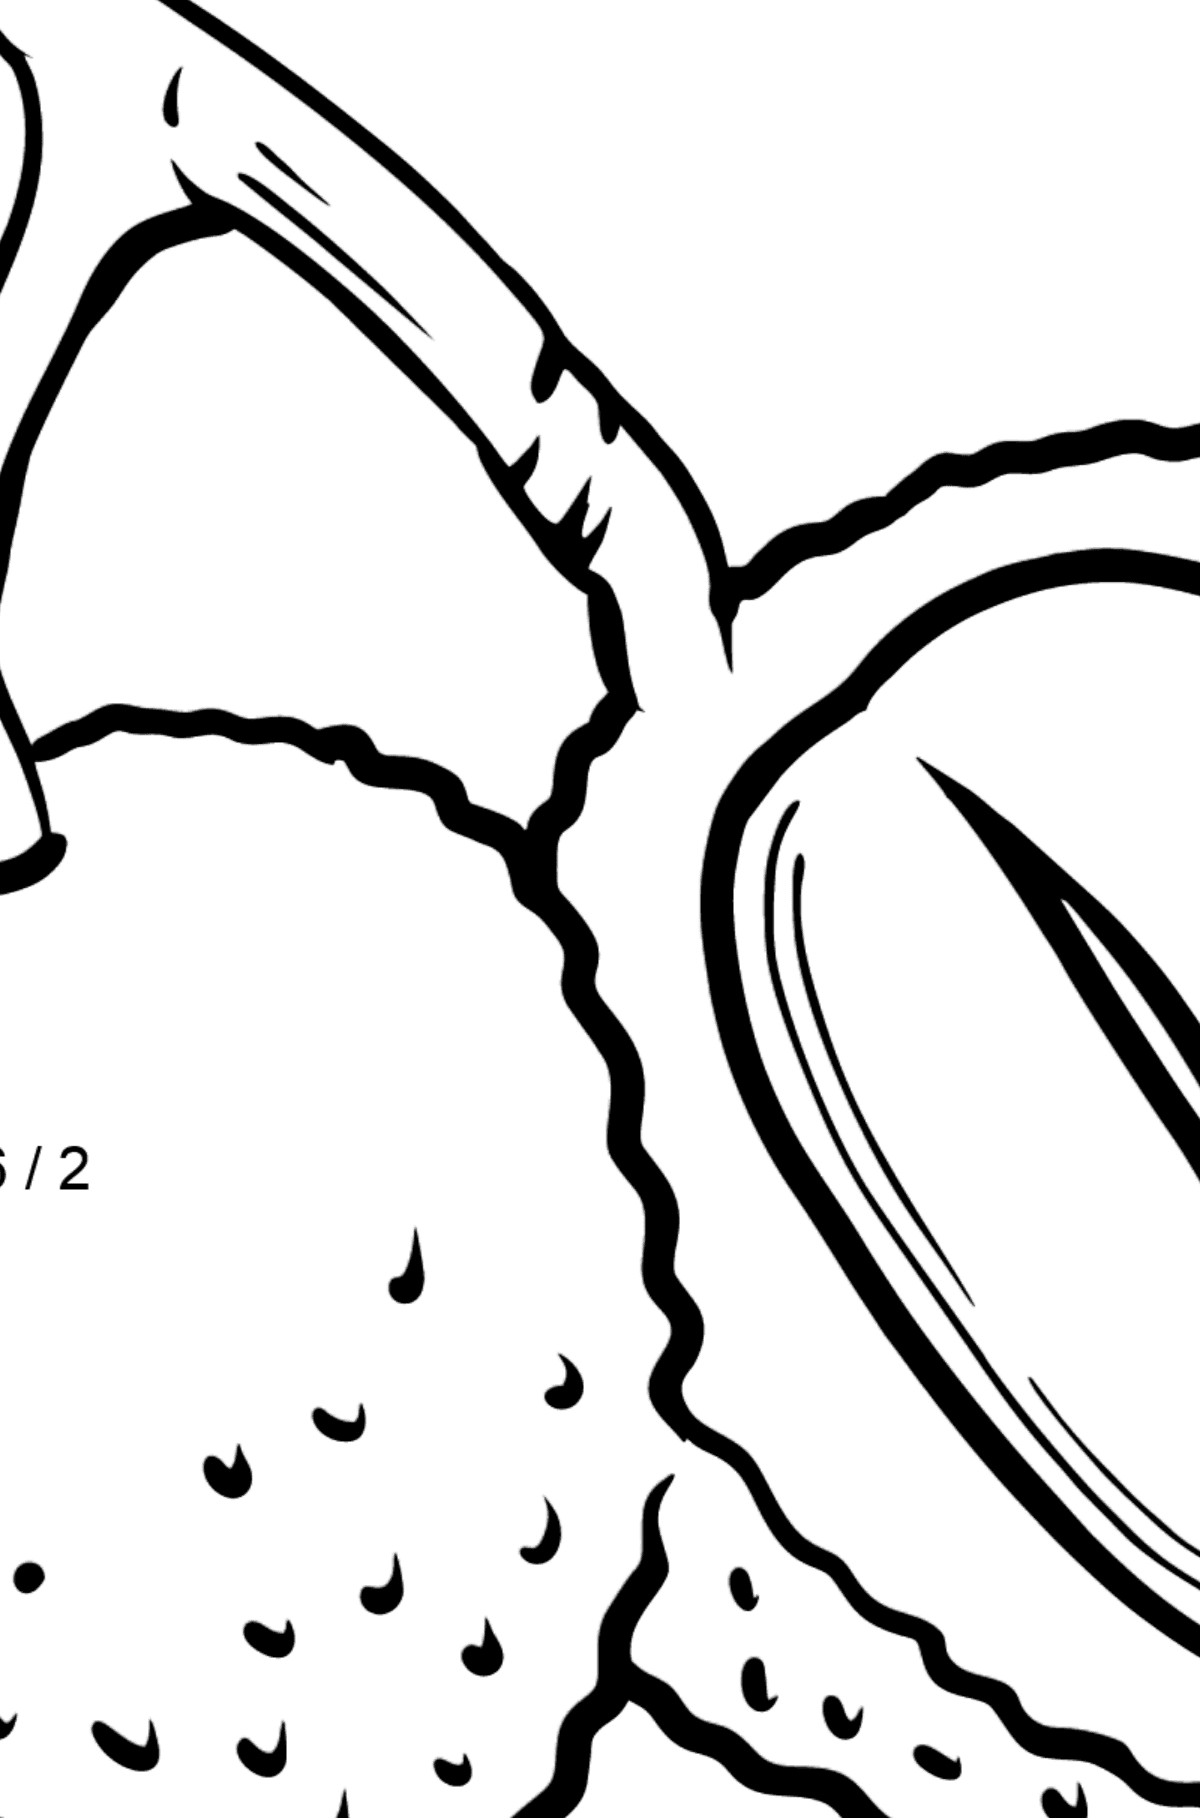 Durian coloring page - Math Coloring - Division for Kids